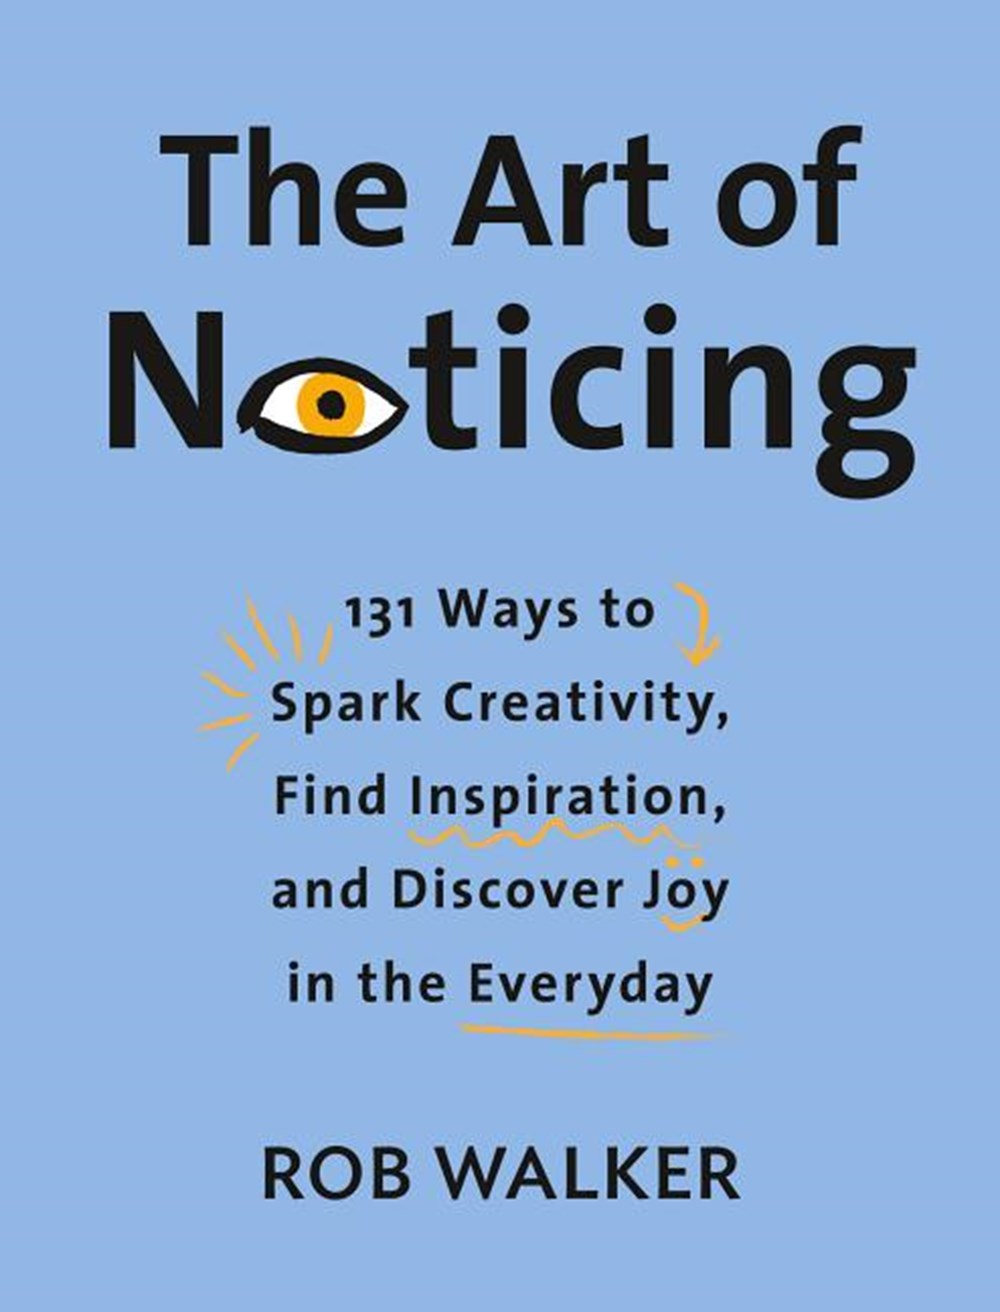 Art of Noticing 131 Ways to Spark Creativity, Find Inspiration, and Discover Joy in the Everyday